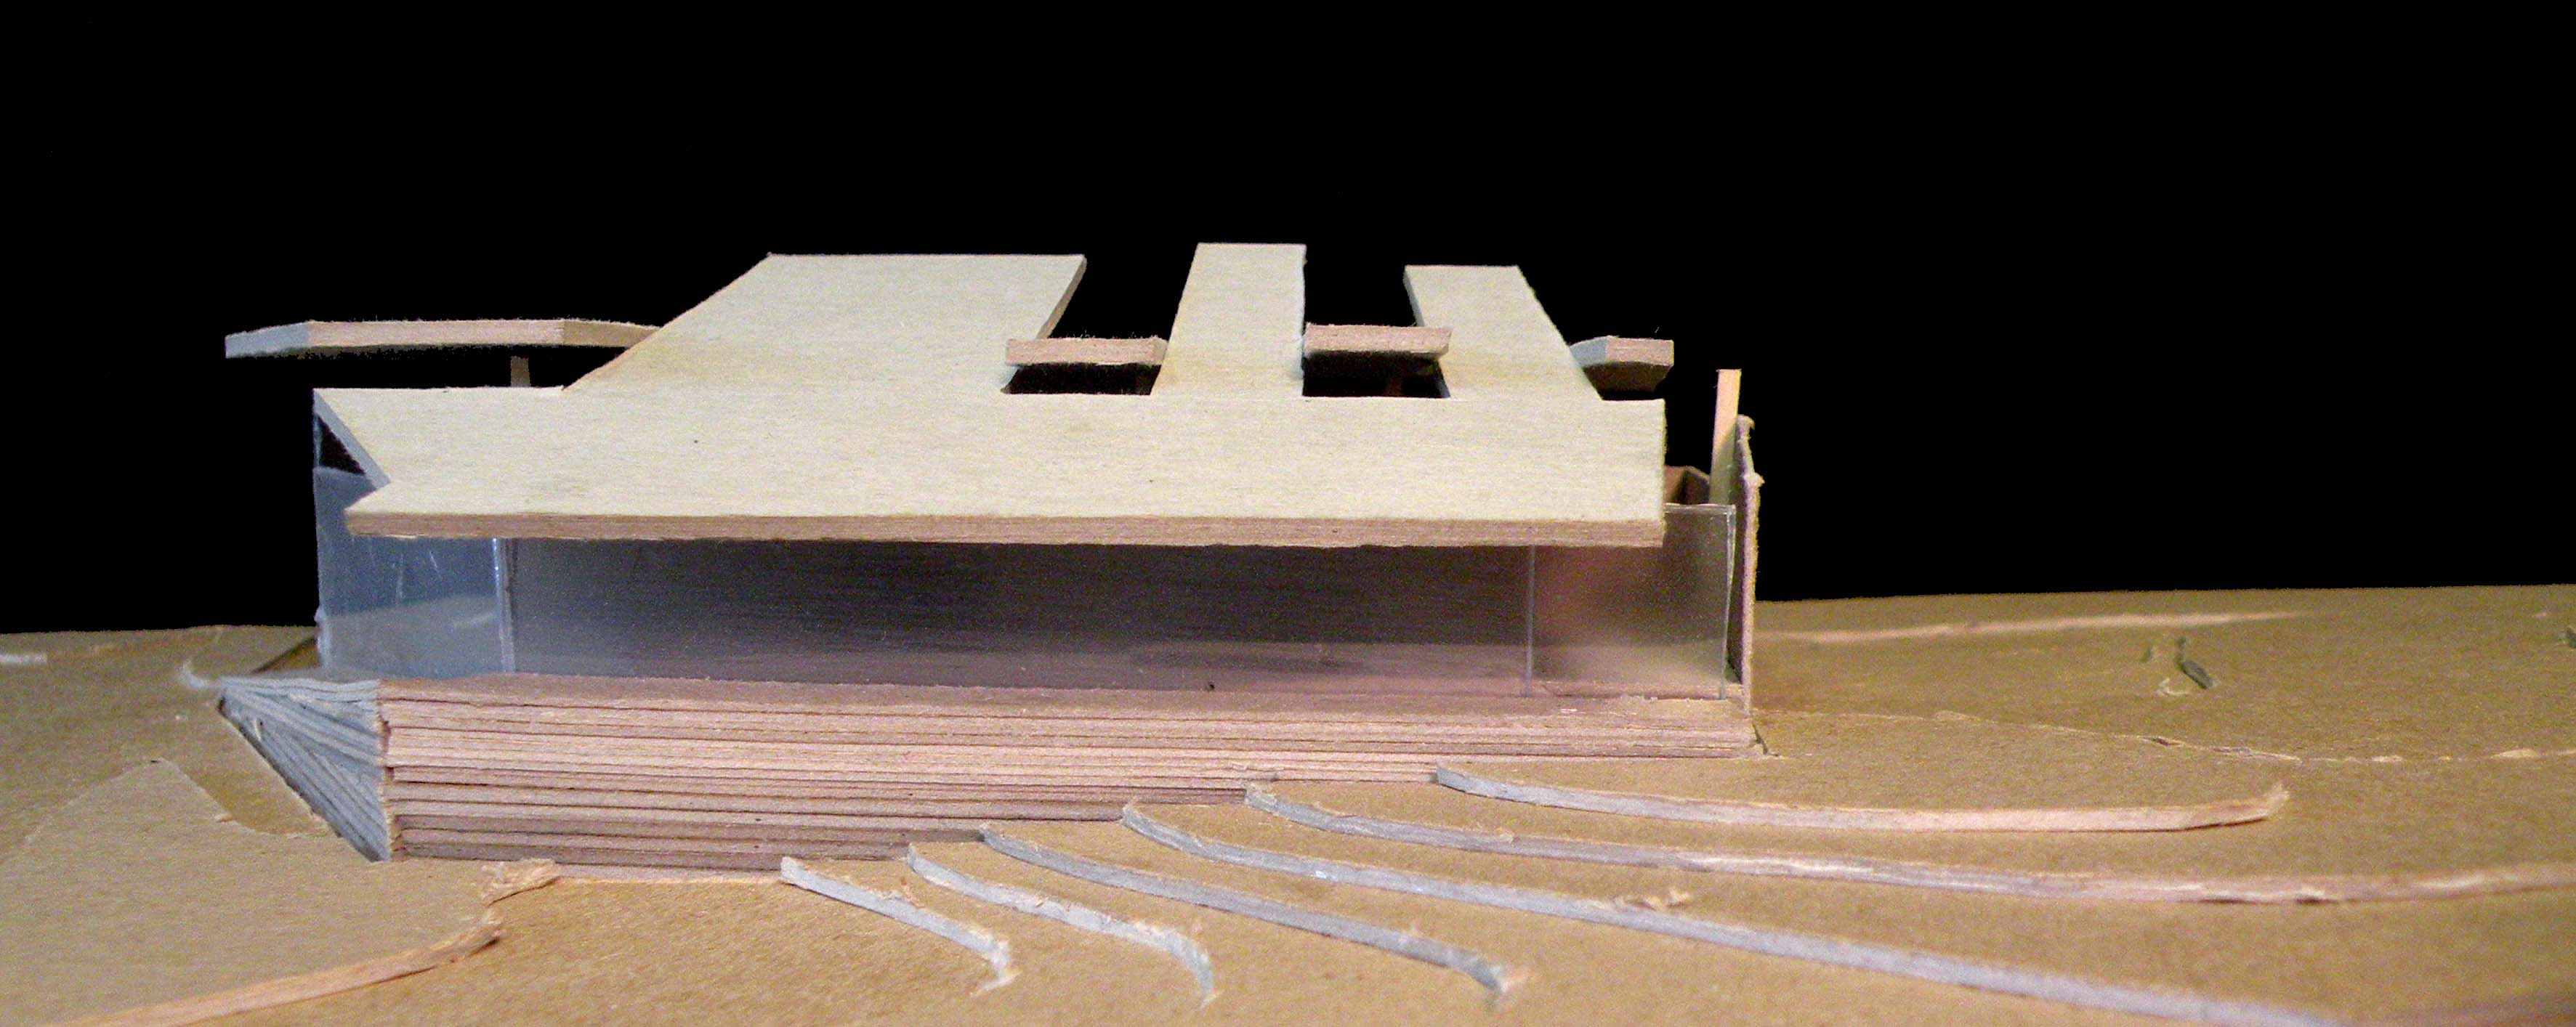 Mass Model- Entrance Facade